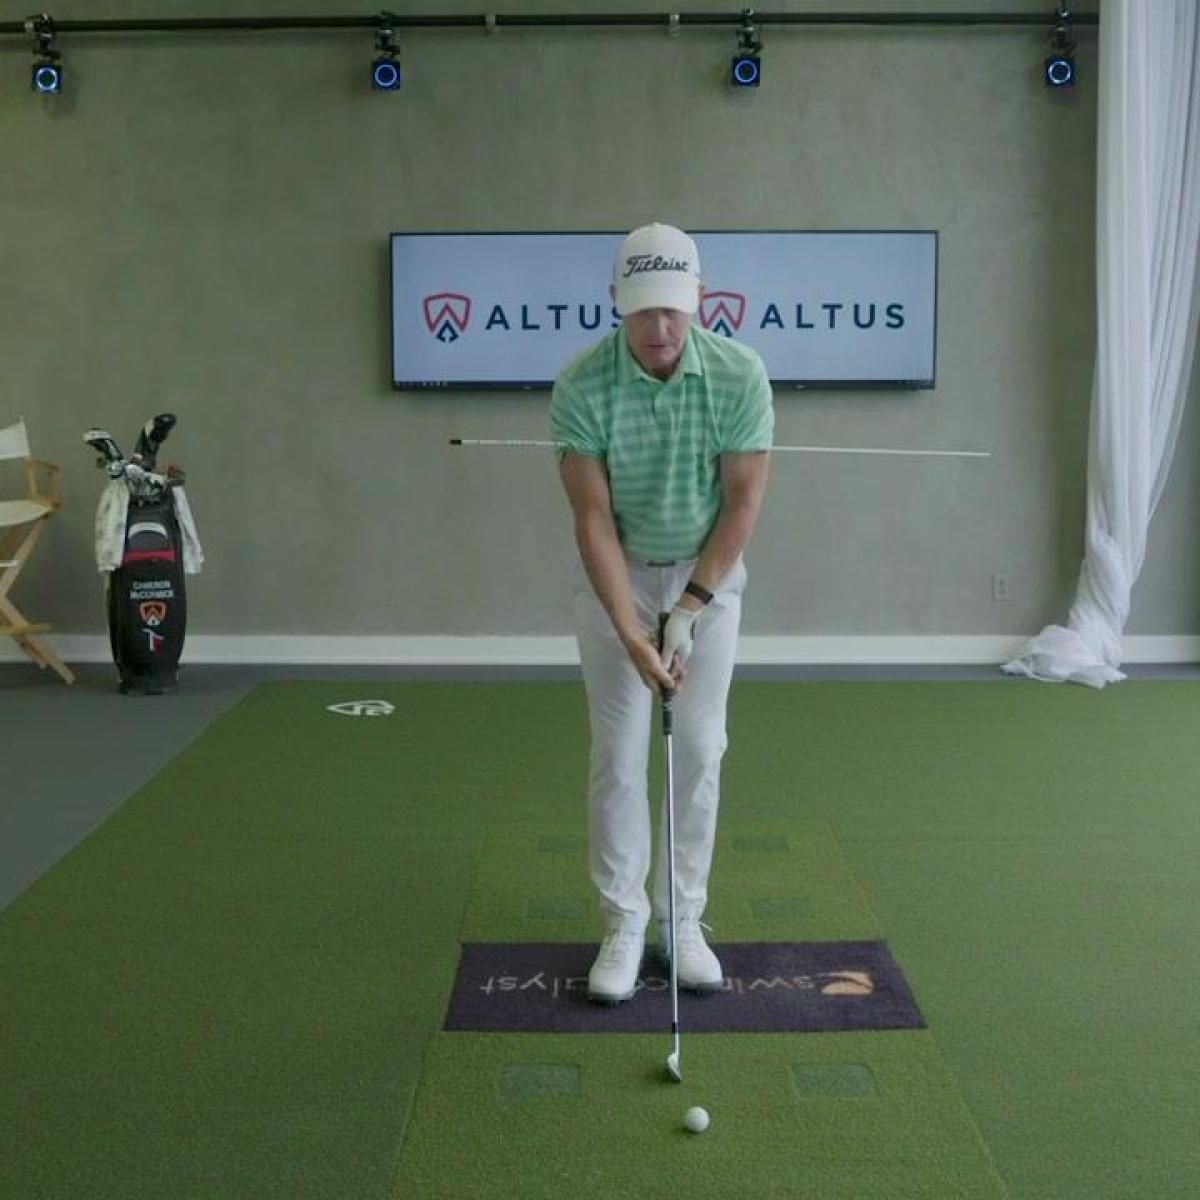 36+ Cameron mccormick golf lessons information